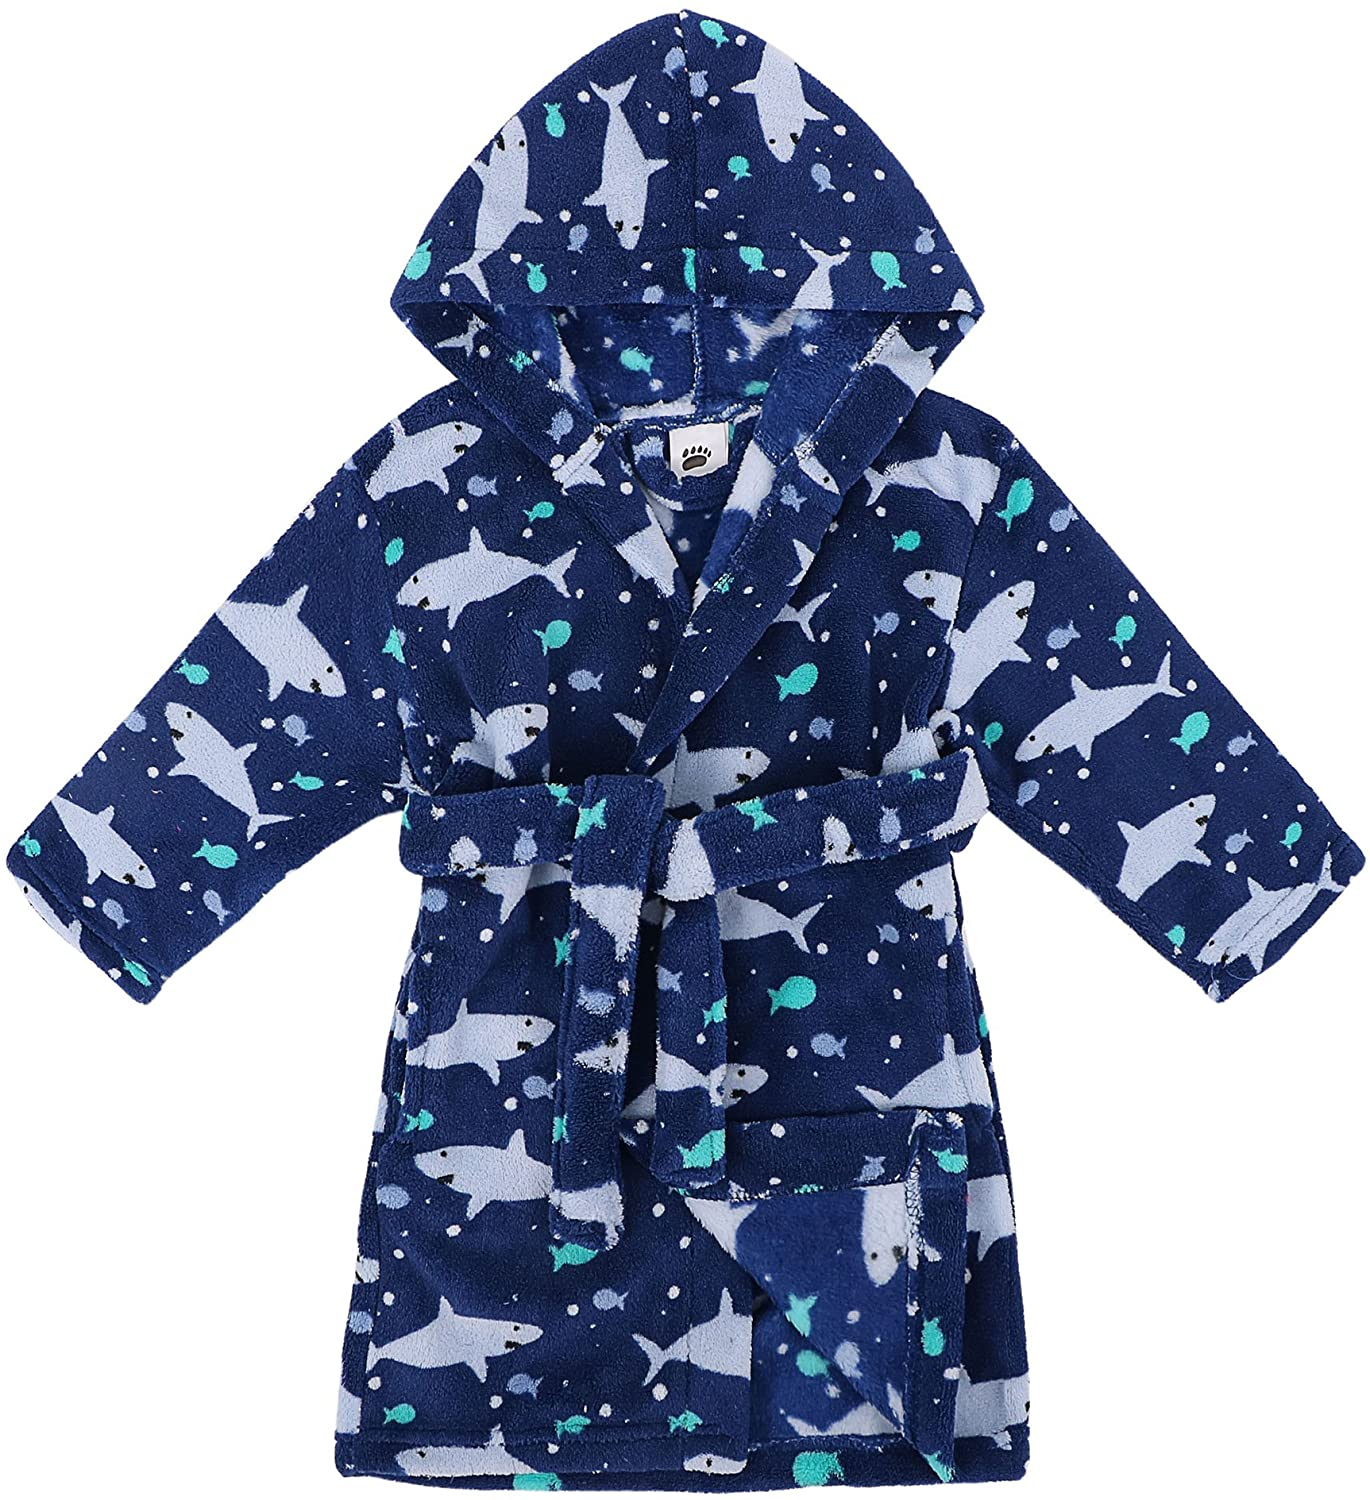 Verabella Boys Girls' Plush Soft Fleece Printed Hooded Beach Cover up Pool wrap